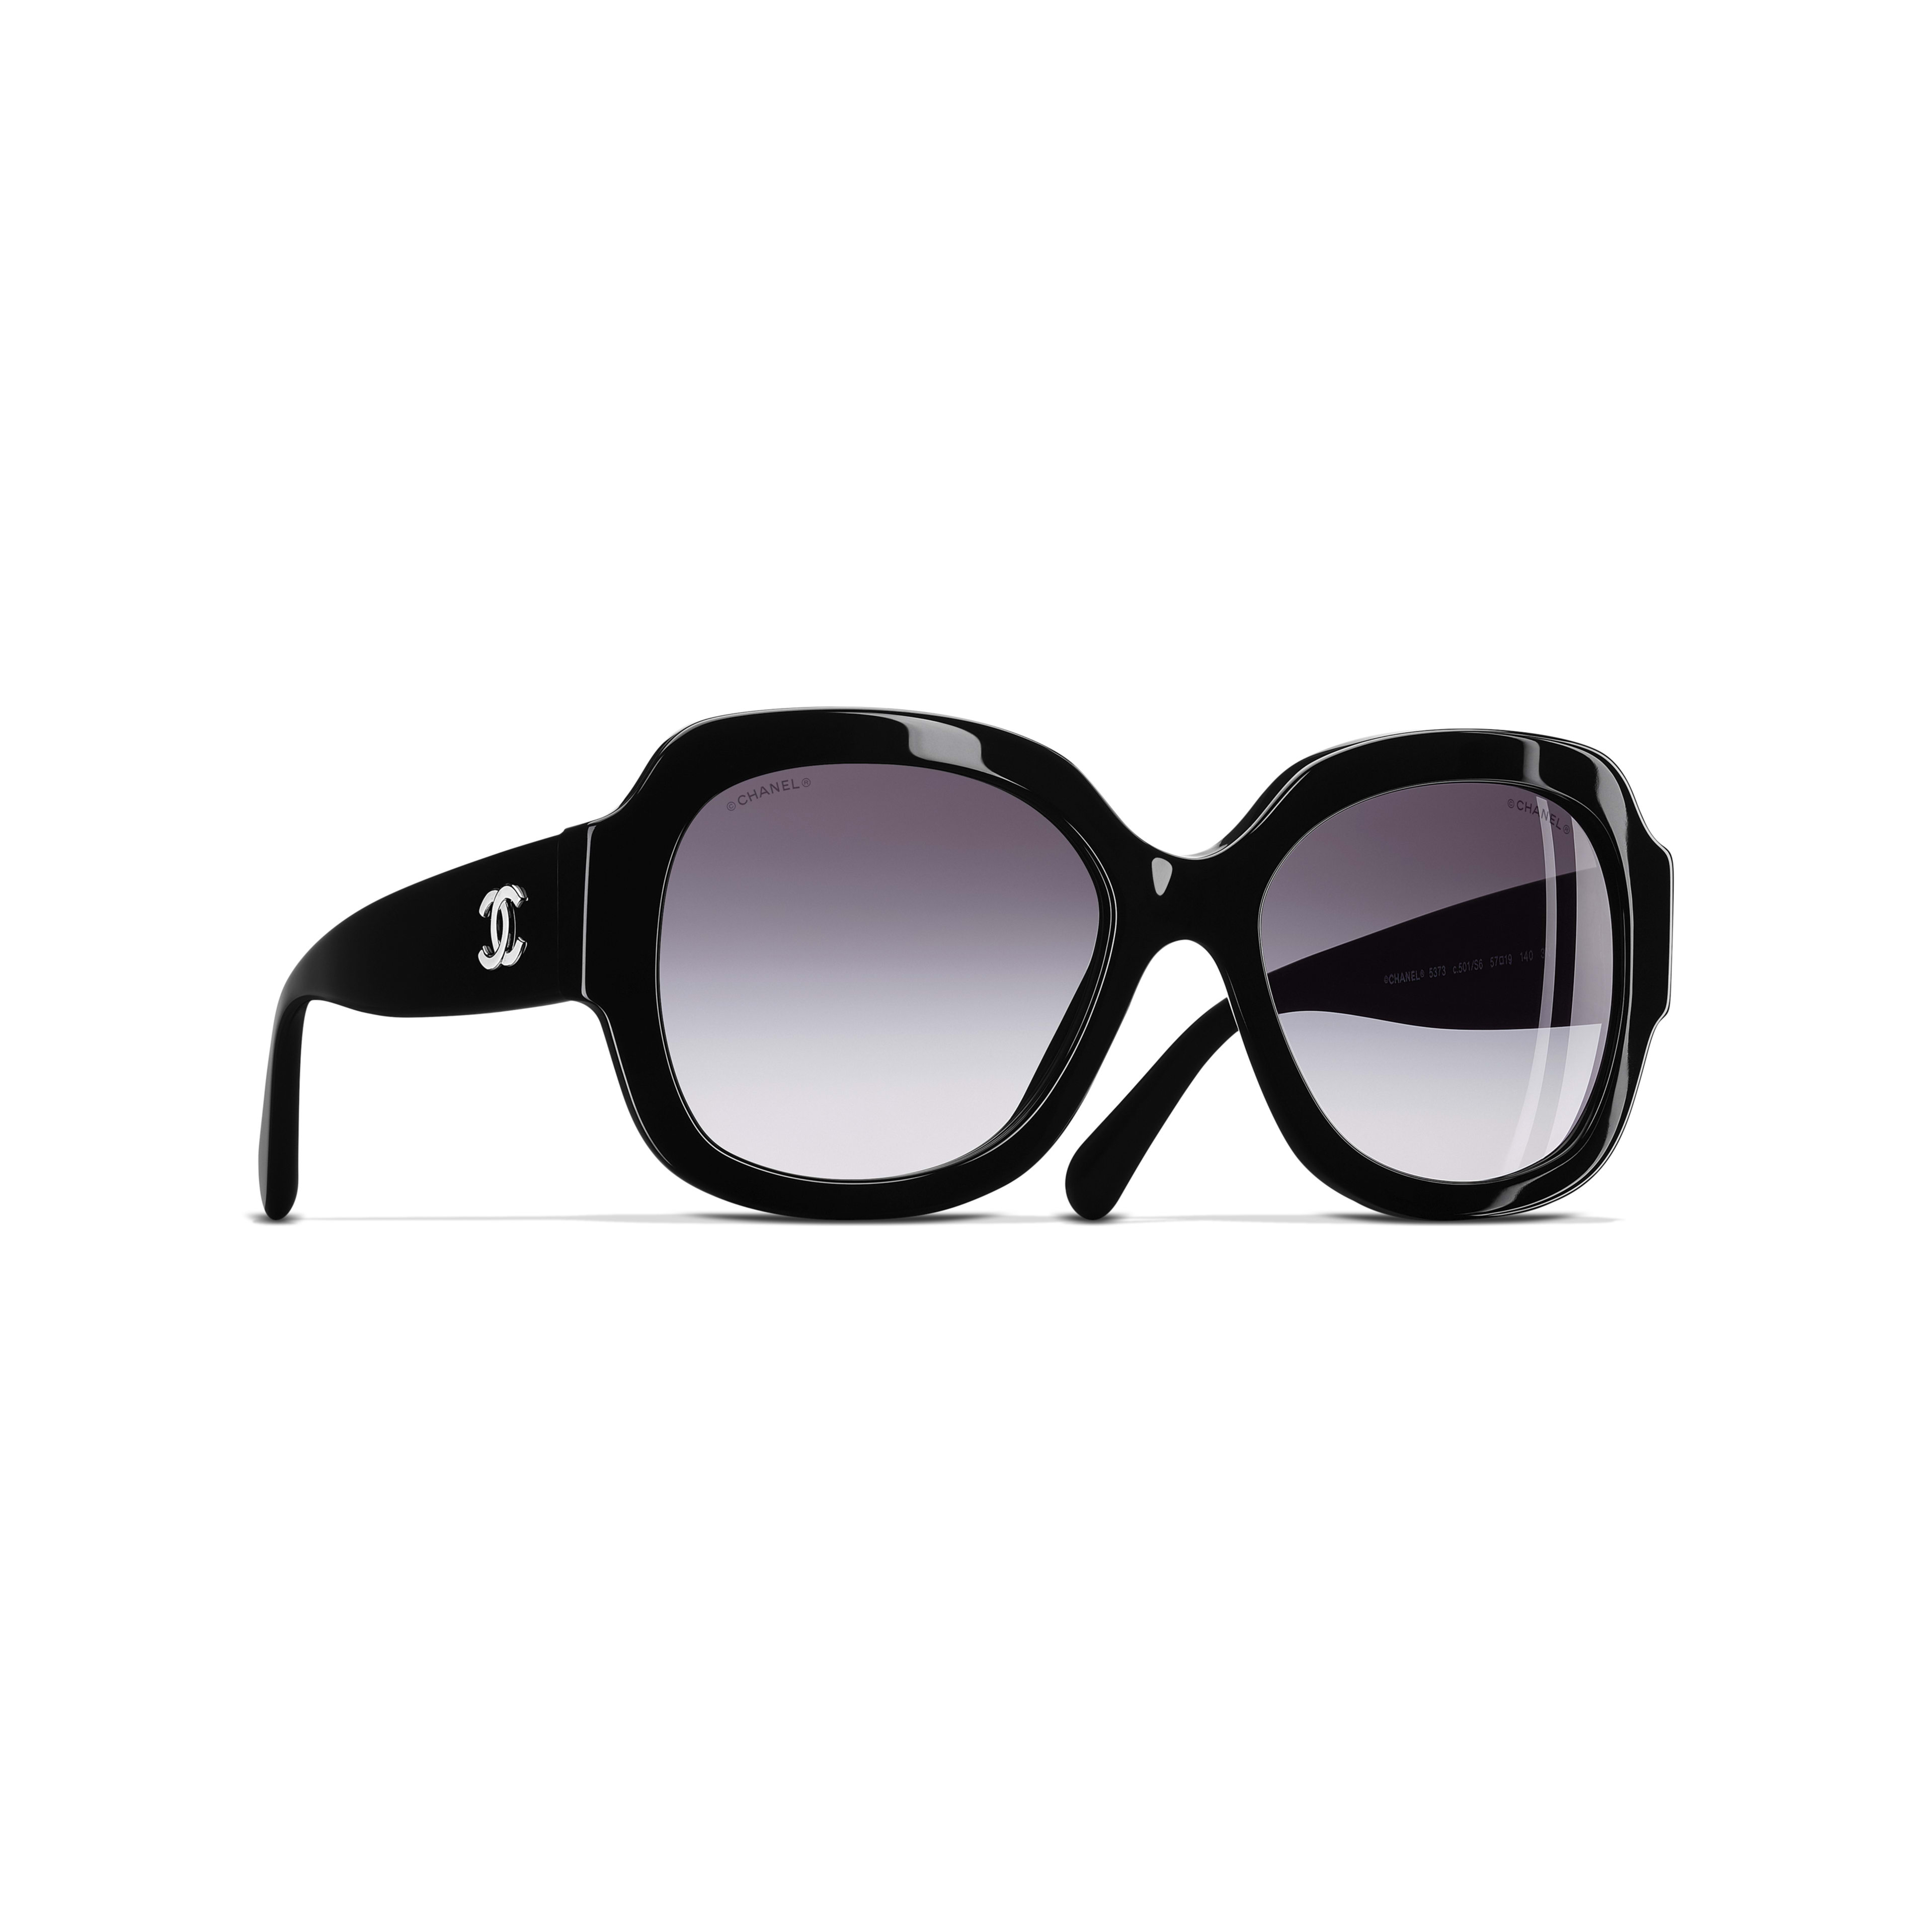 Square Sunglasses Acetate Black -                                               view 1 - see full sized version